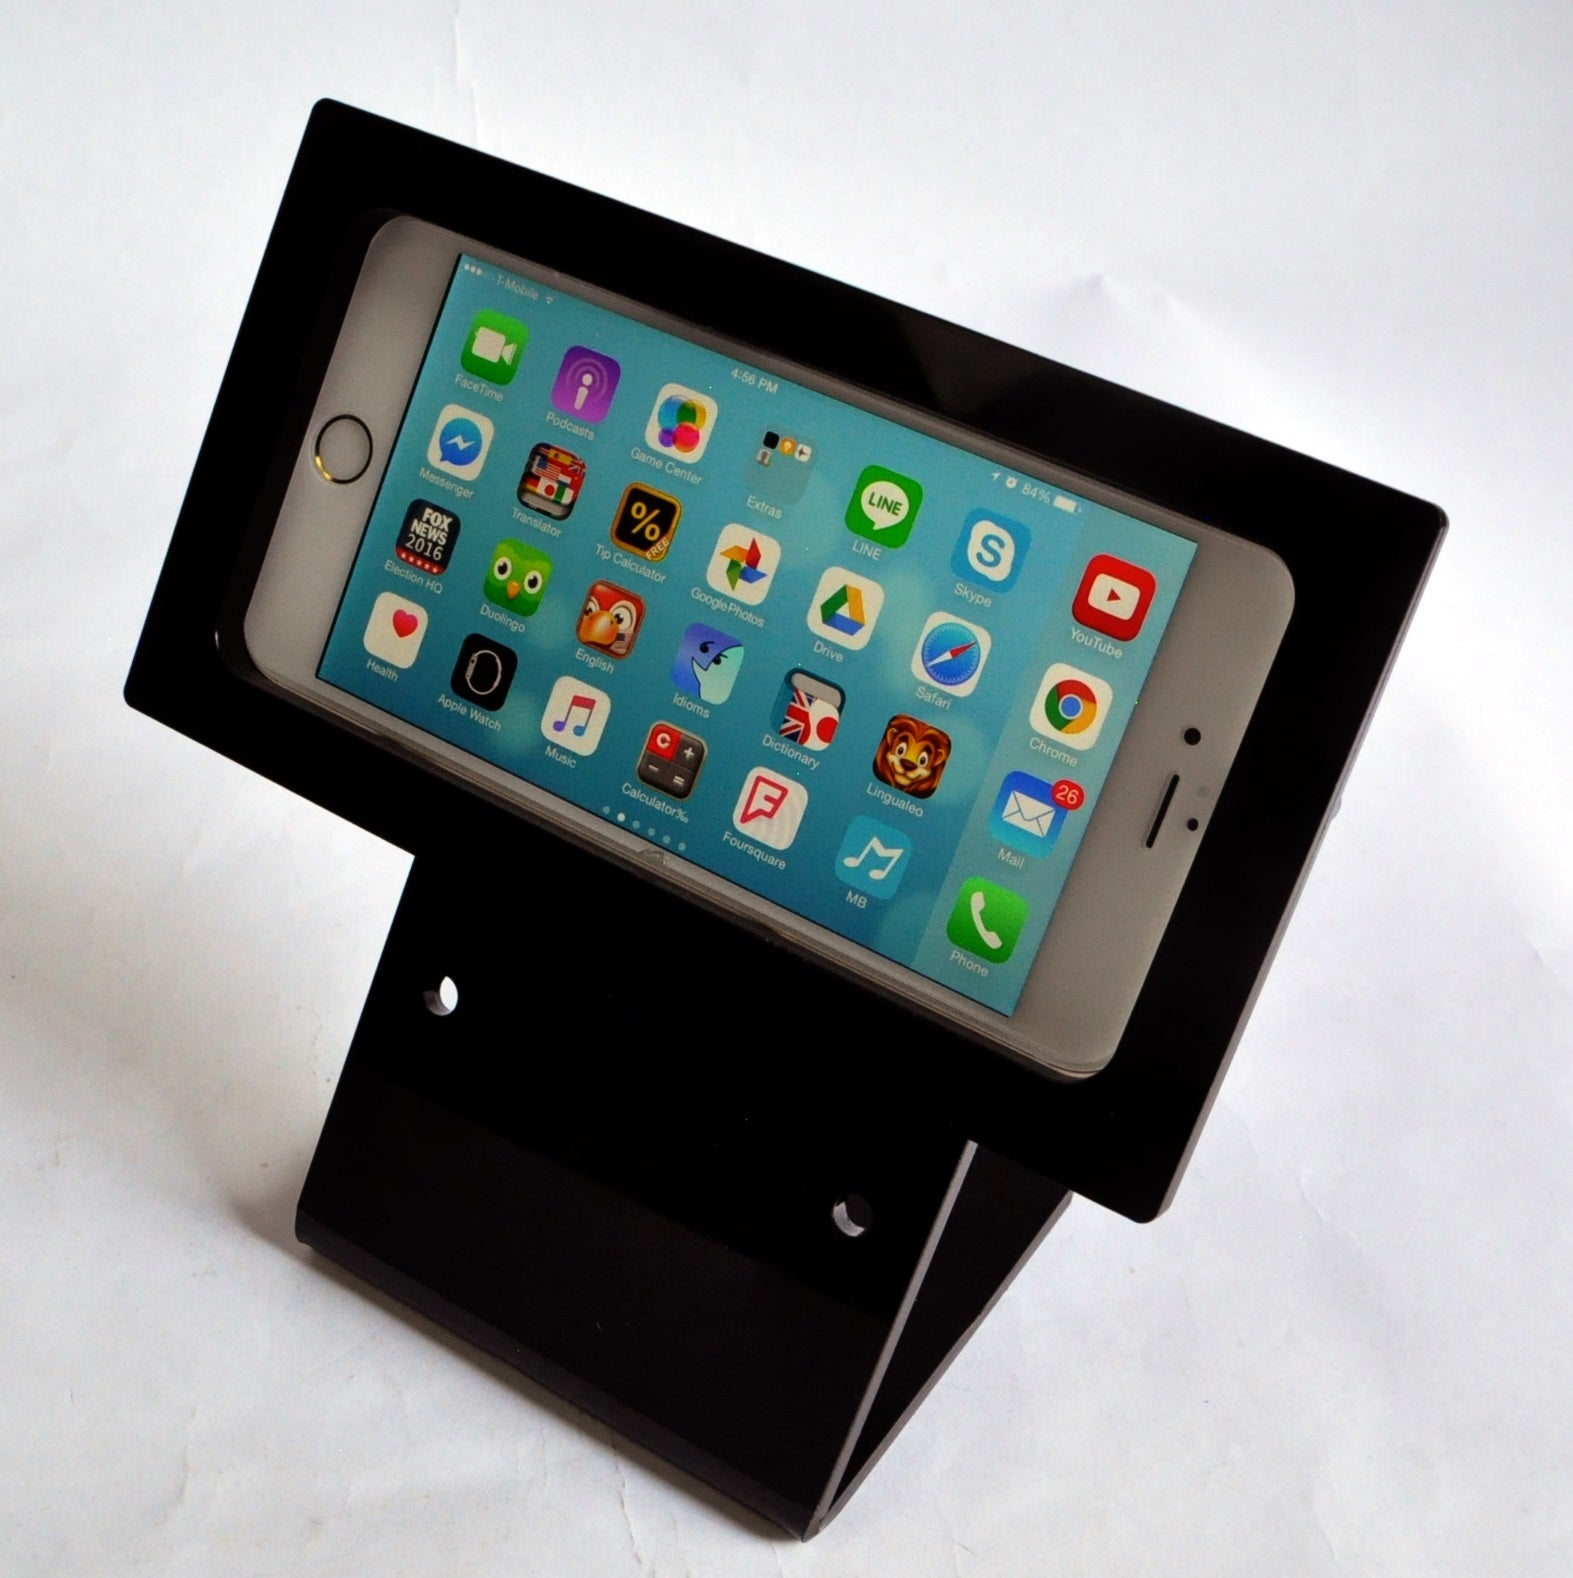 iPhone 6/7 Plus Security VESA Kit with Desktop Stand